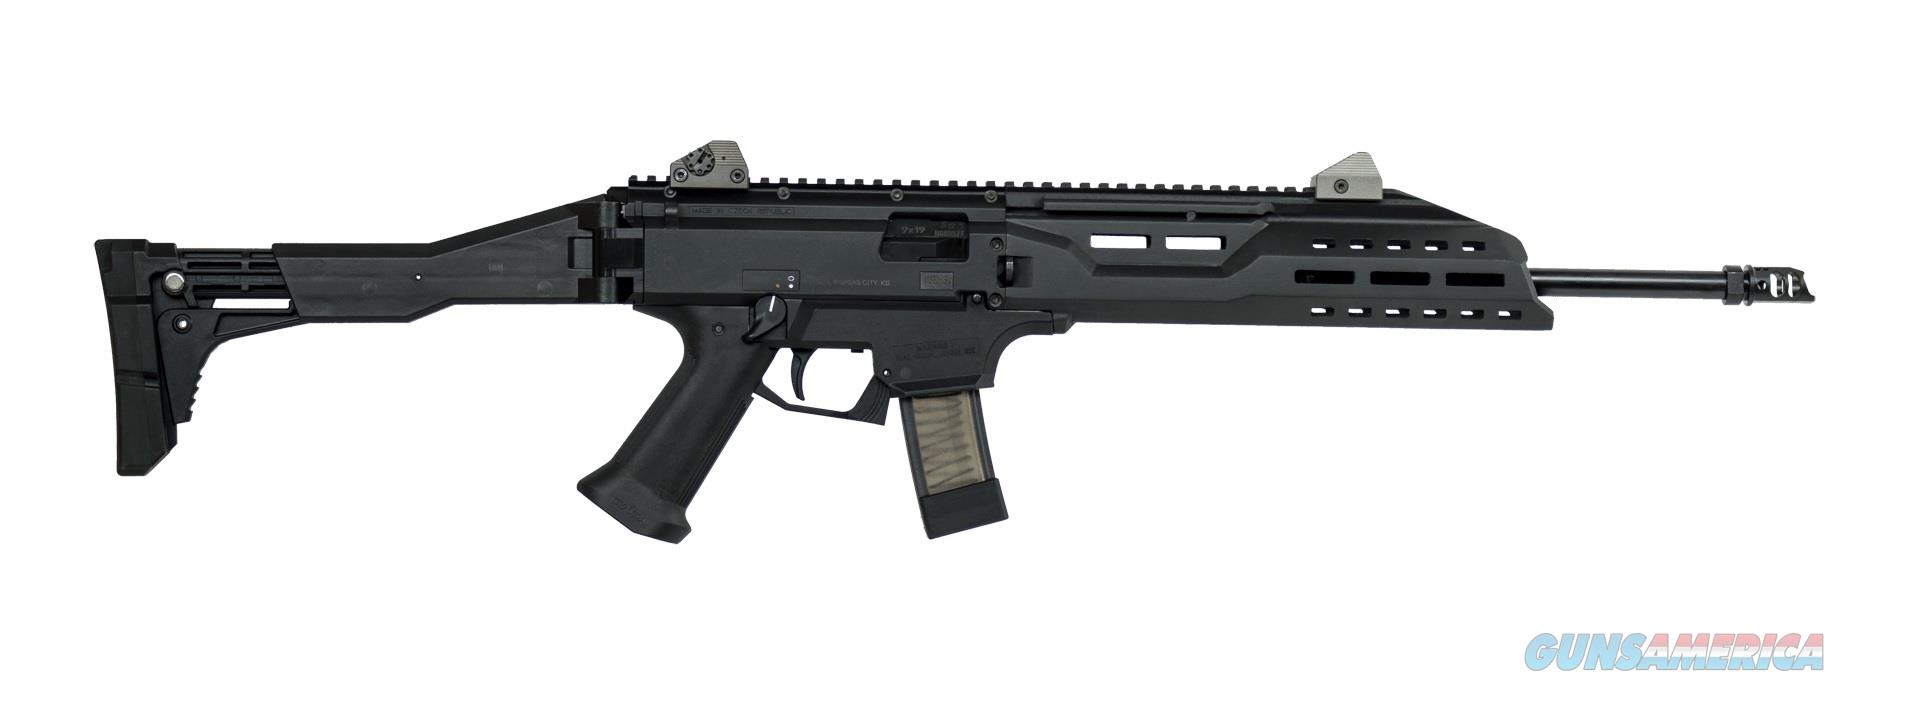 CZ-USA Scorpion EVO 3 S1 Carbine w/Muzzle Brake 9mm Luger 08505   Guns > Rifles > CZ Rifles